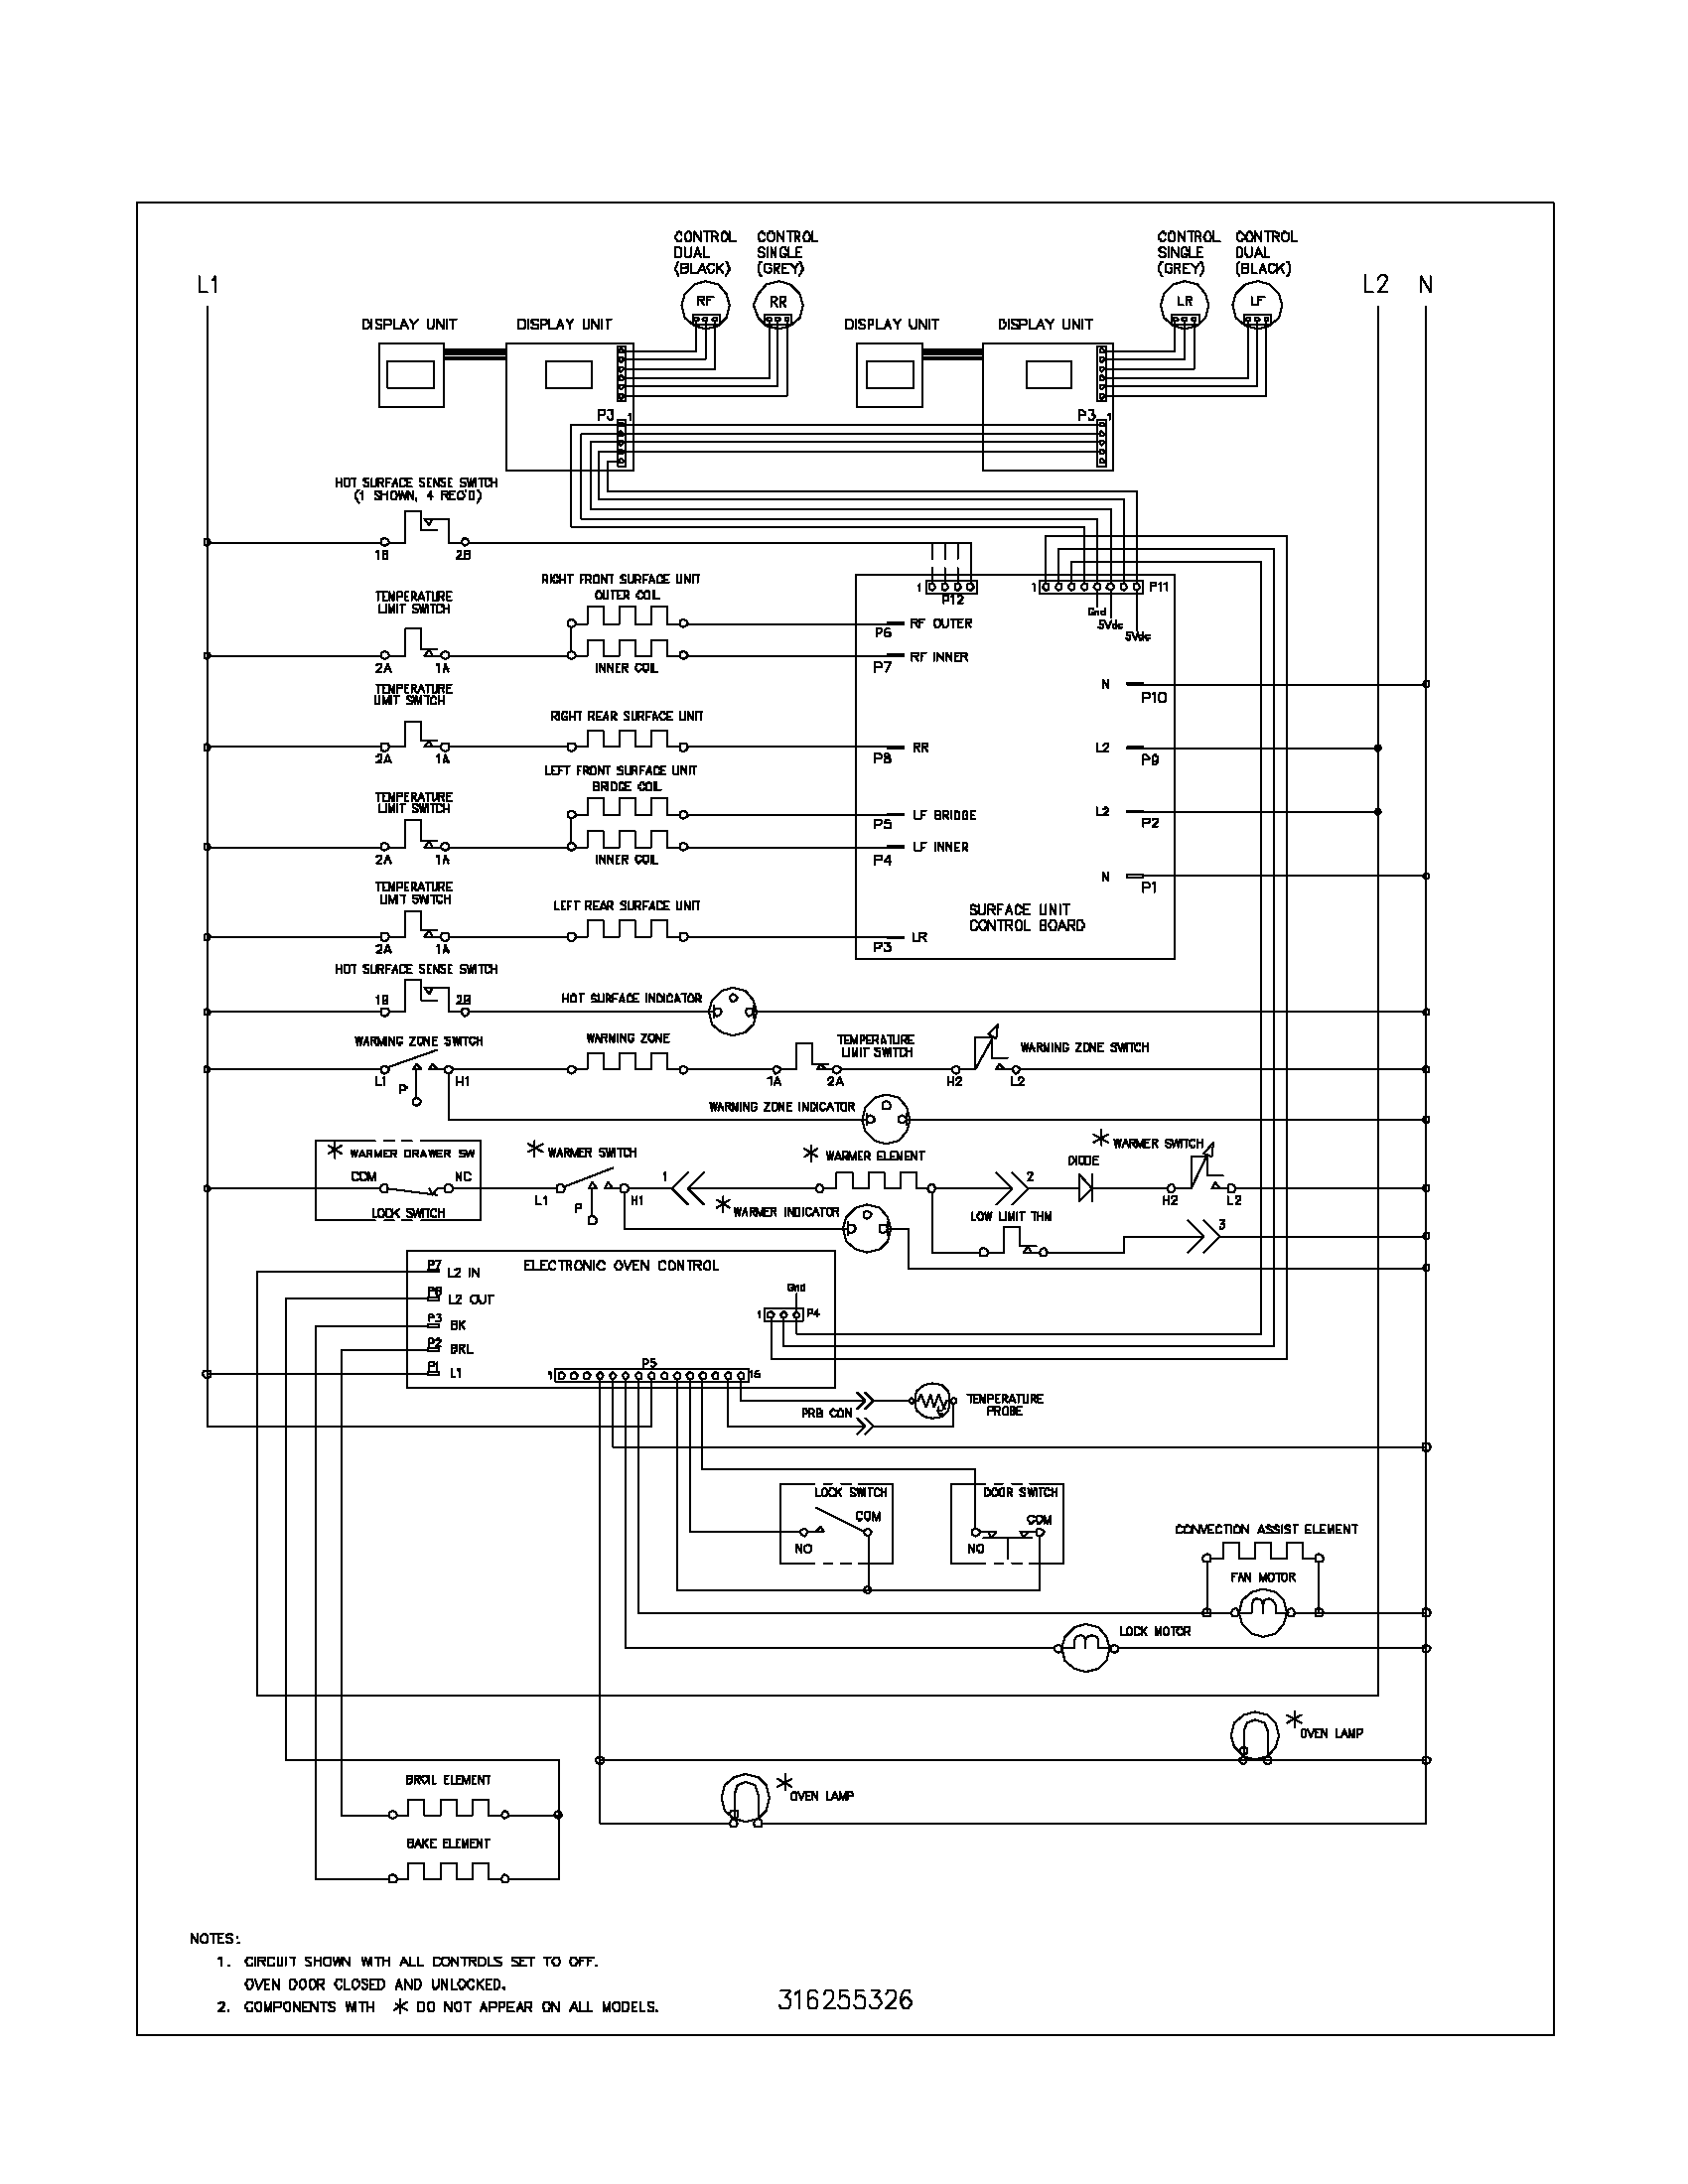 wiring schematic parts stove wiring diagram & name original wiring diagram jpg views  at fashall.co